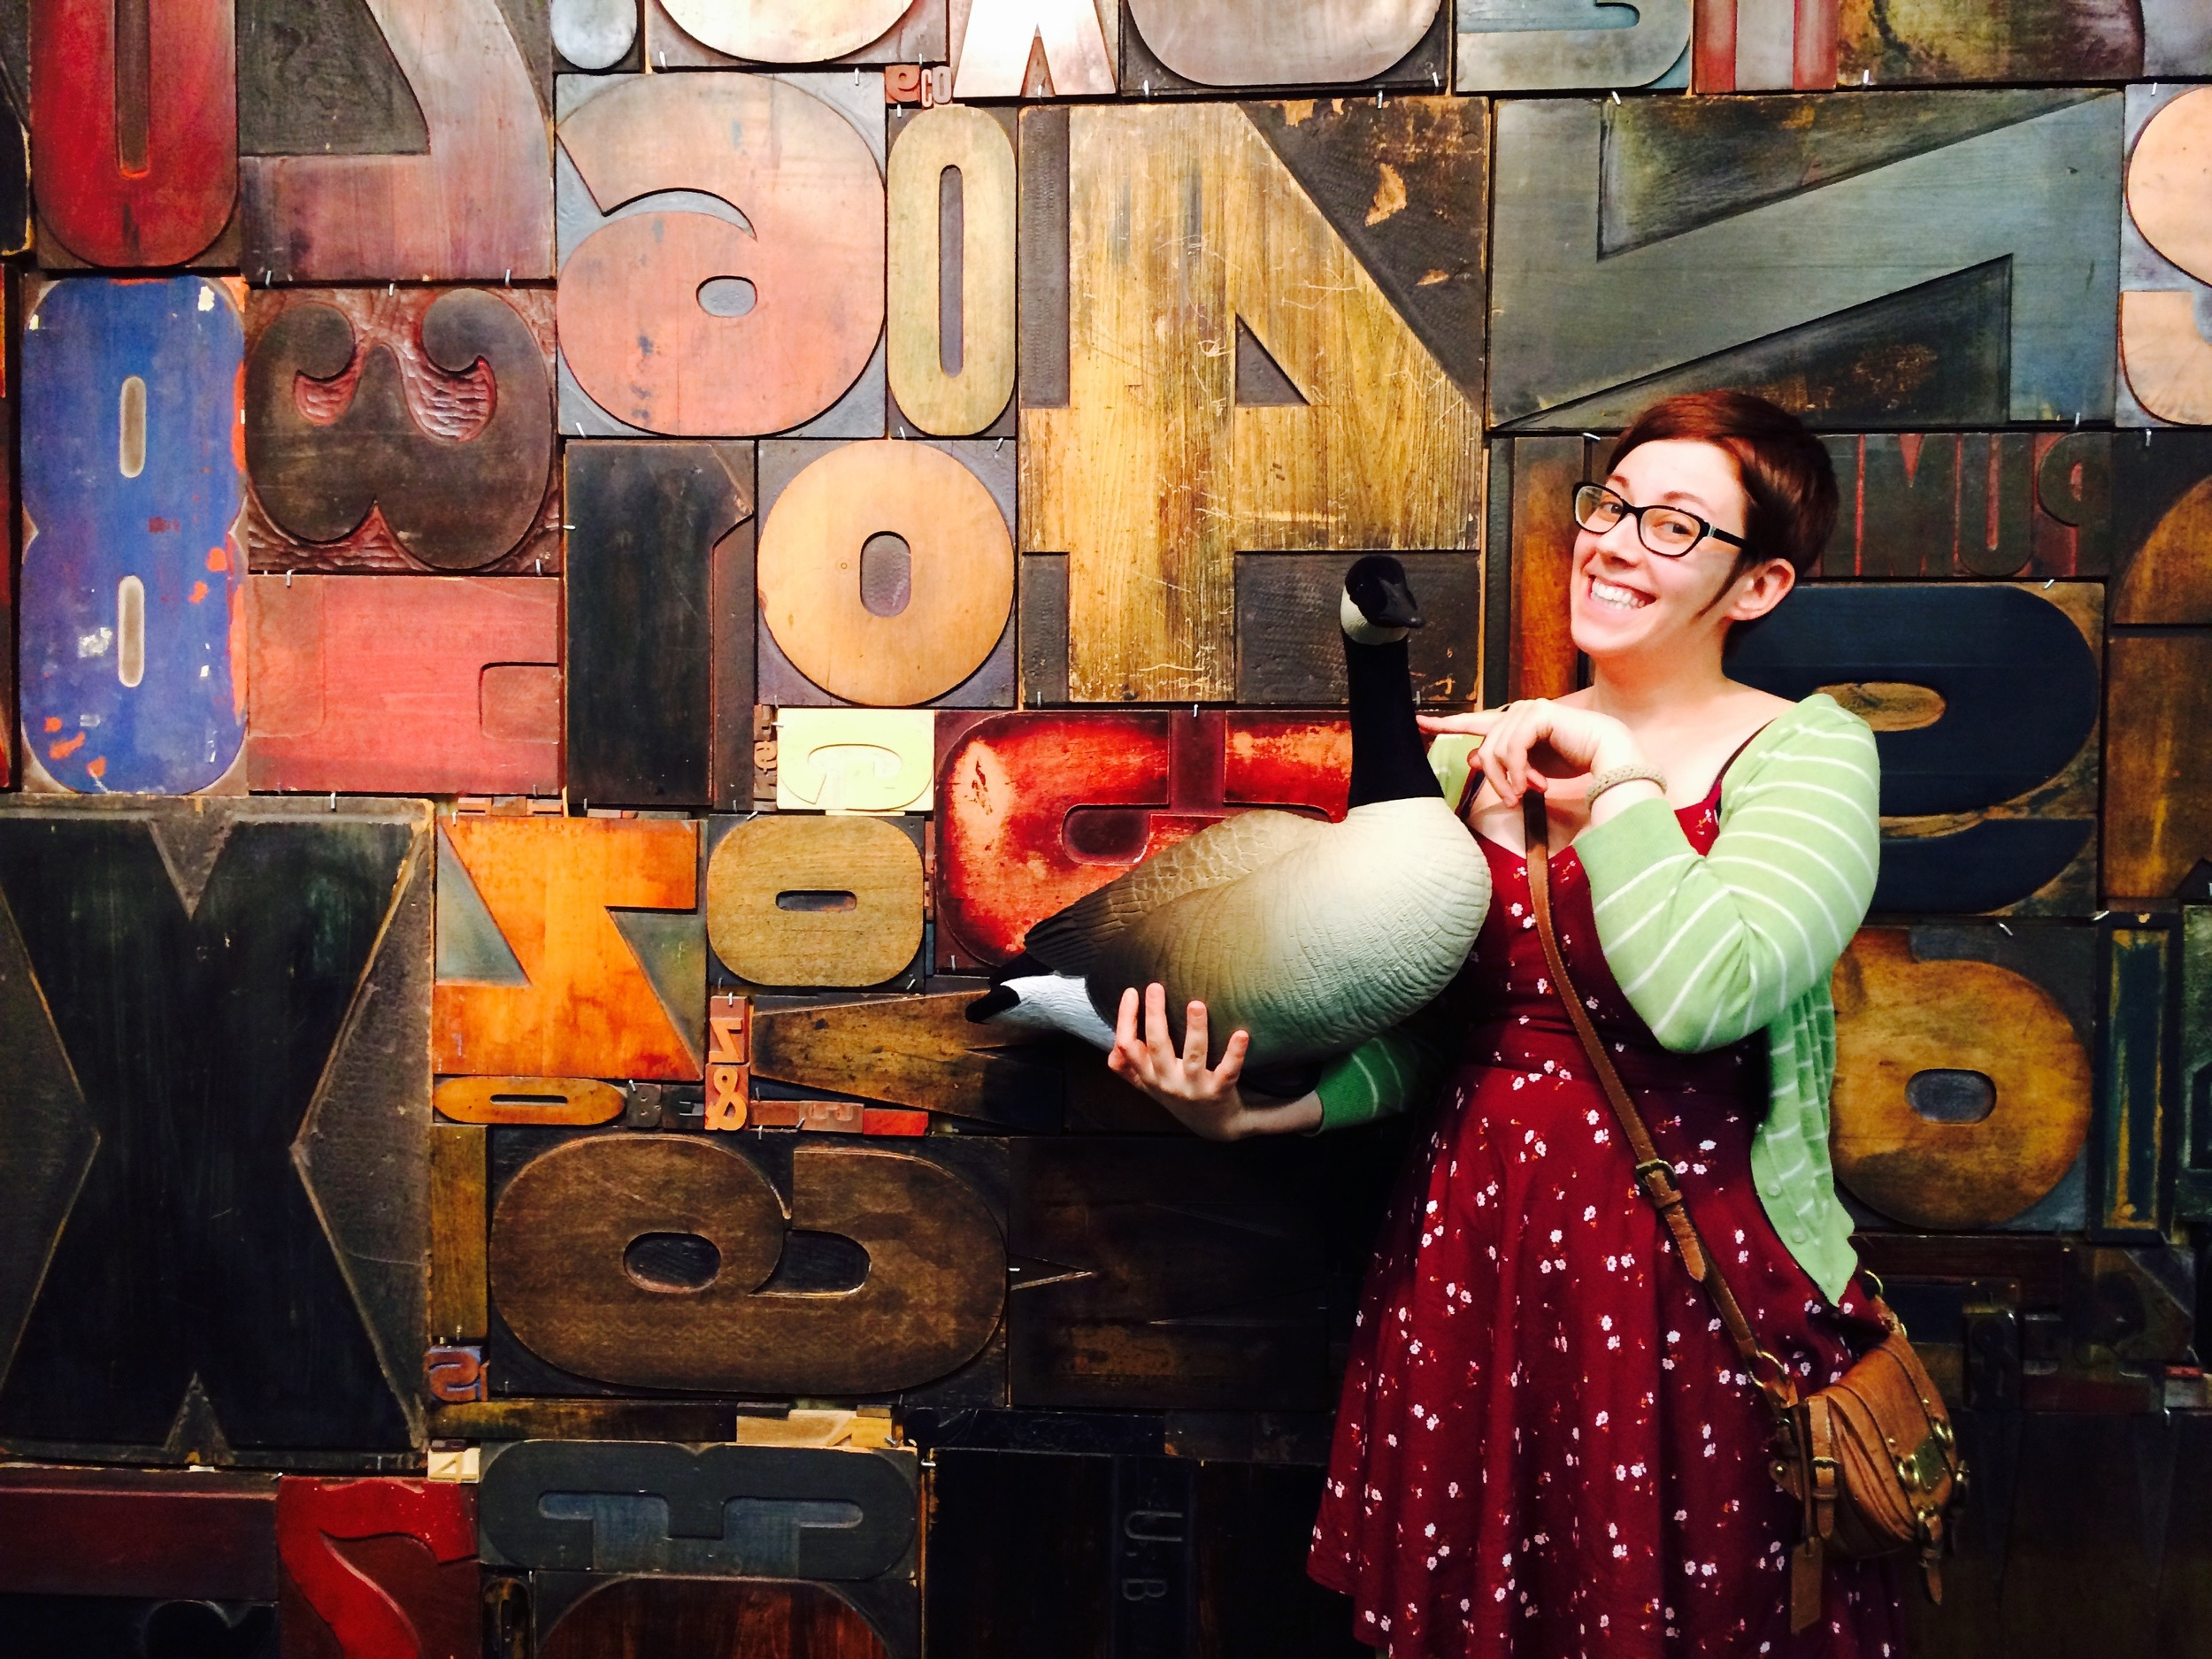 Alyse, pictured here with the ever elusive Wayz Goose at the 2015 Hamilton Woodtype Museum Wayzgoose. And yes, that is a giant wall of woodtype.